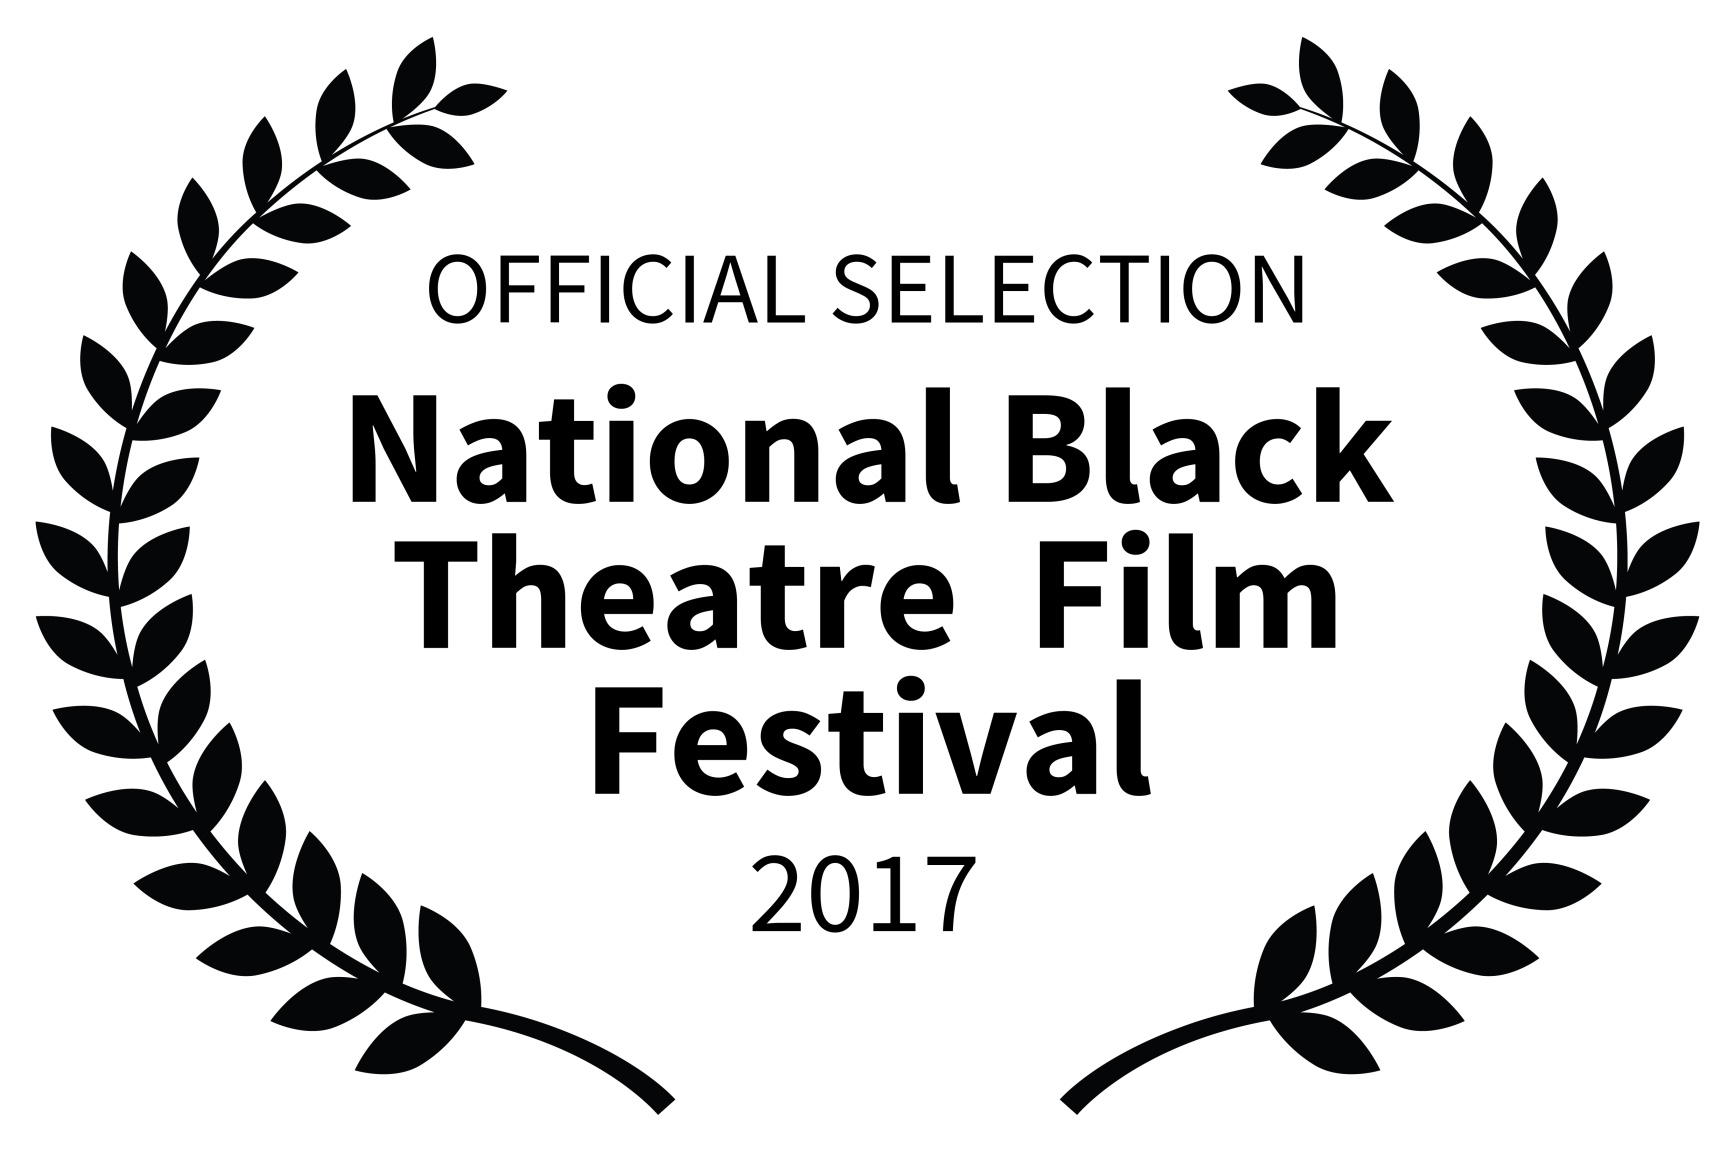 OFFICIAL SELECTION - National Black Theatre  Film Festival - 2017.jpg